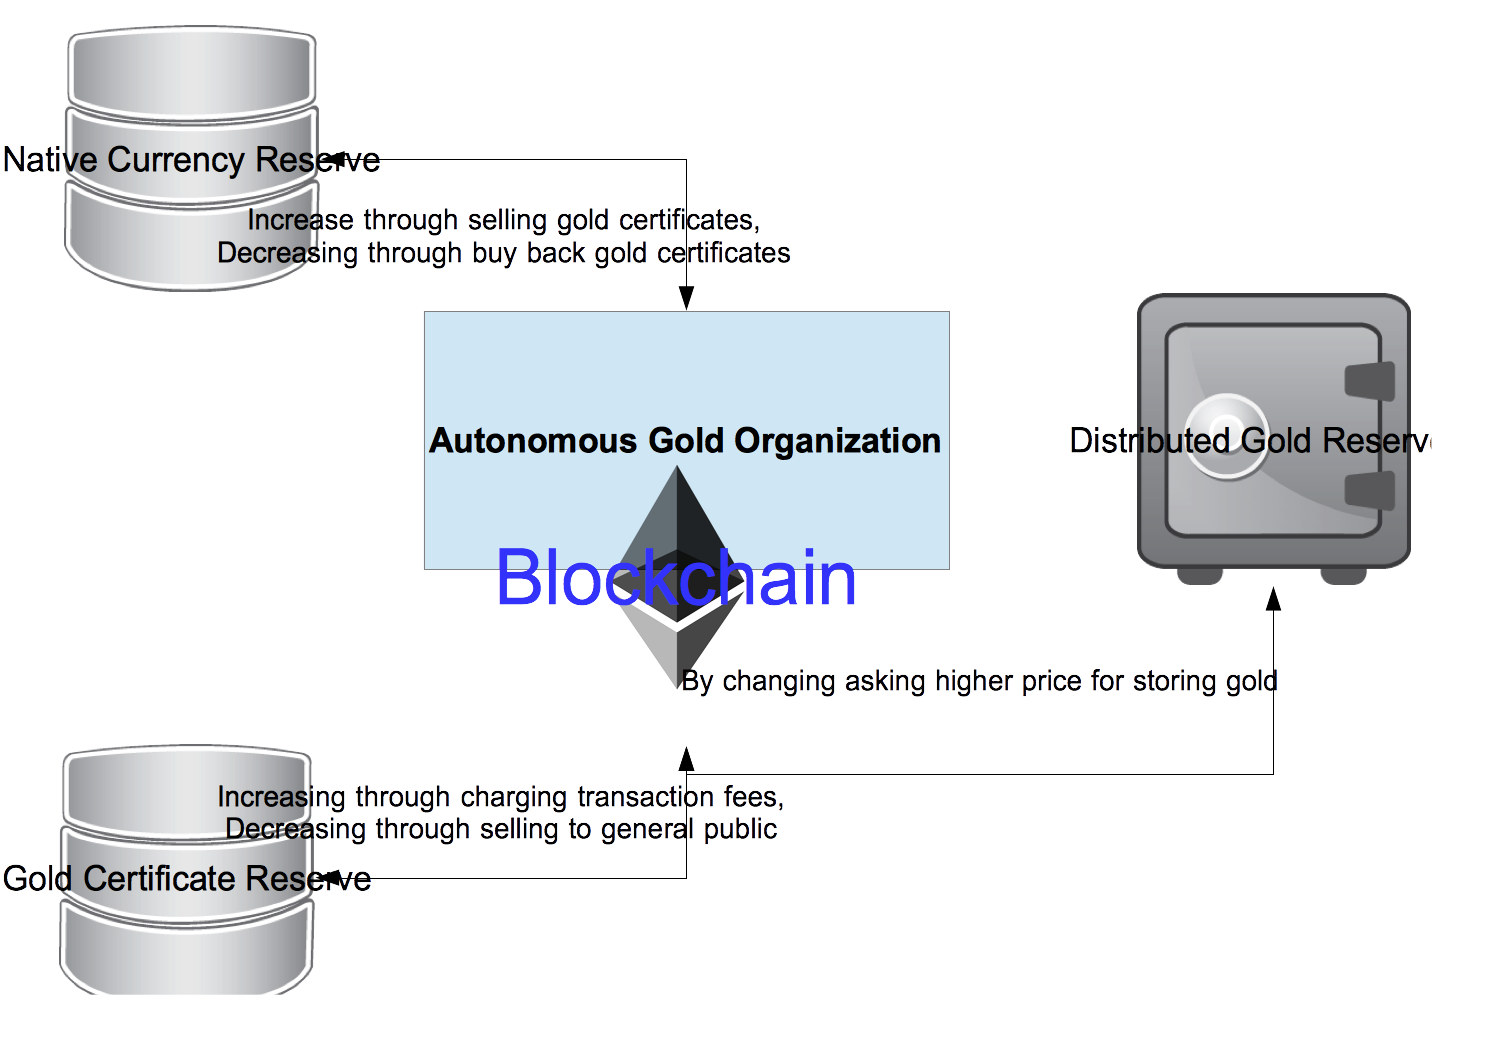 Autonomous Gold Organization - Reserves